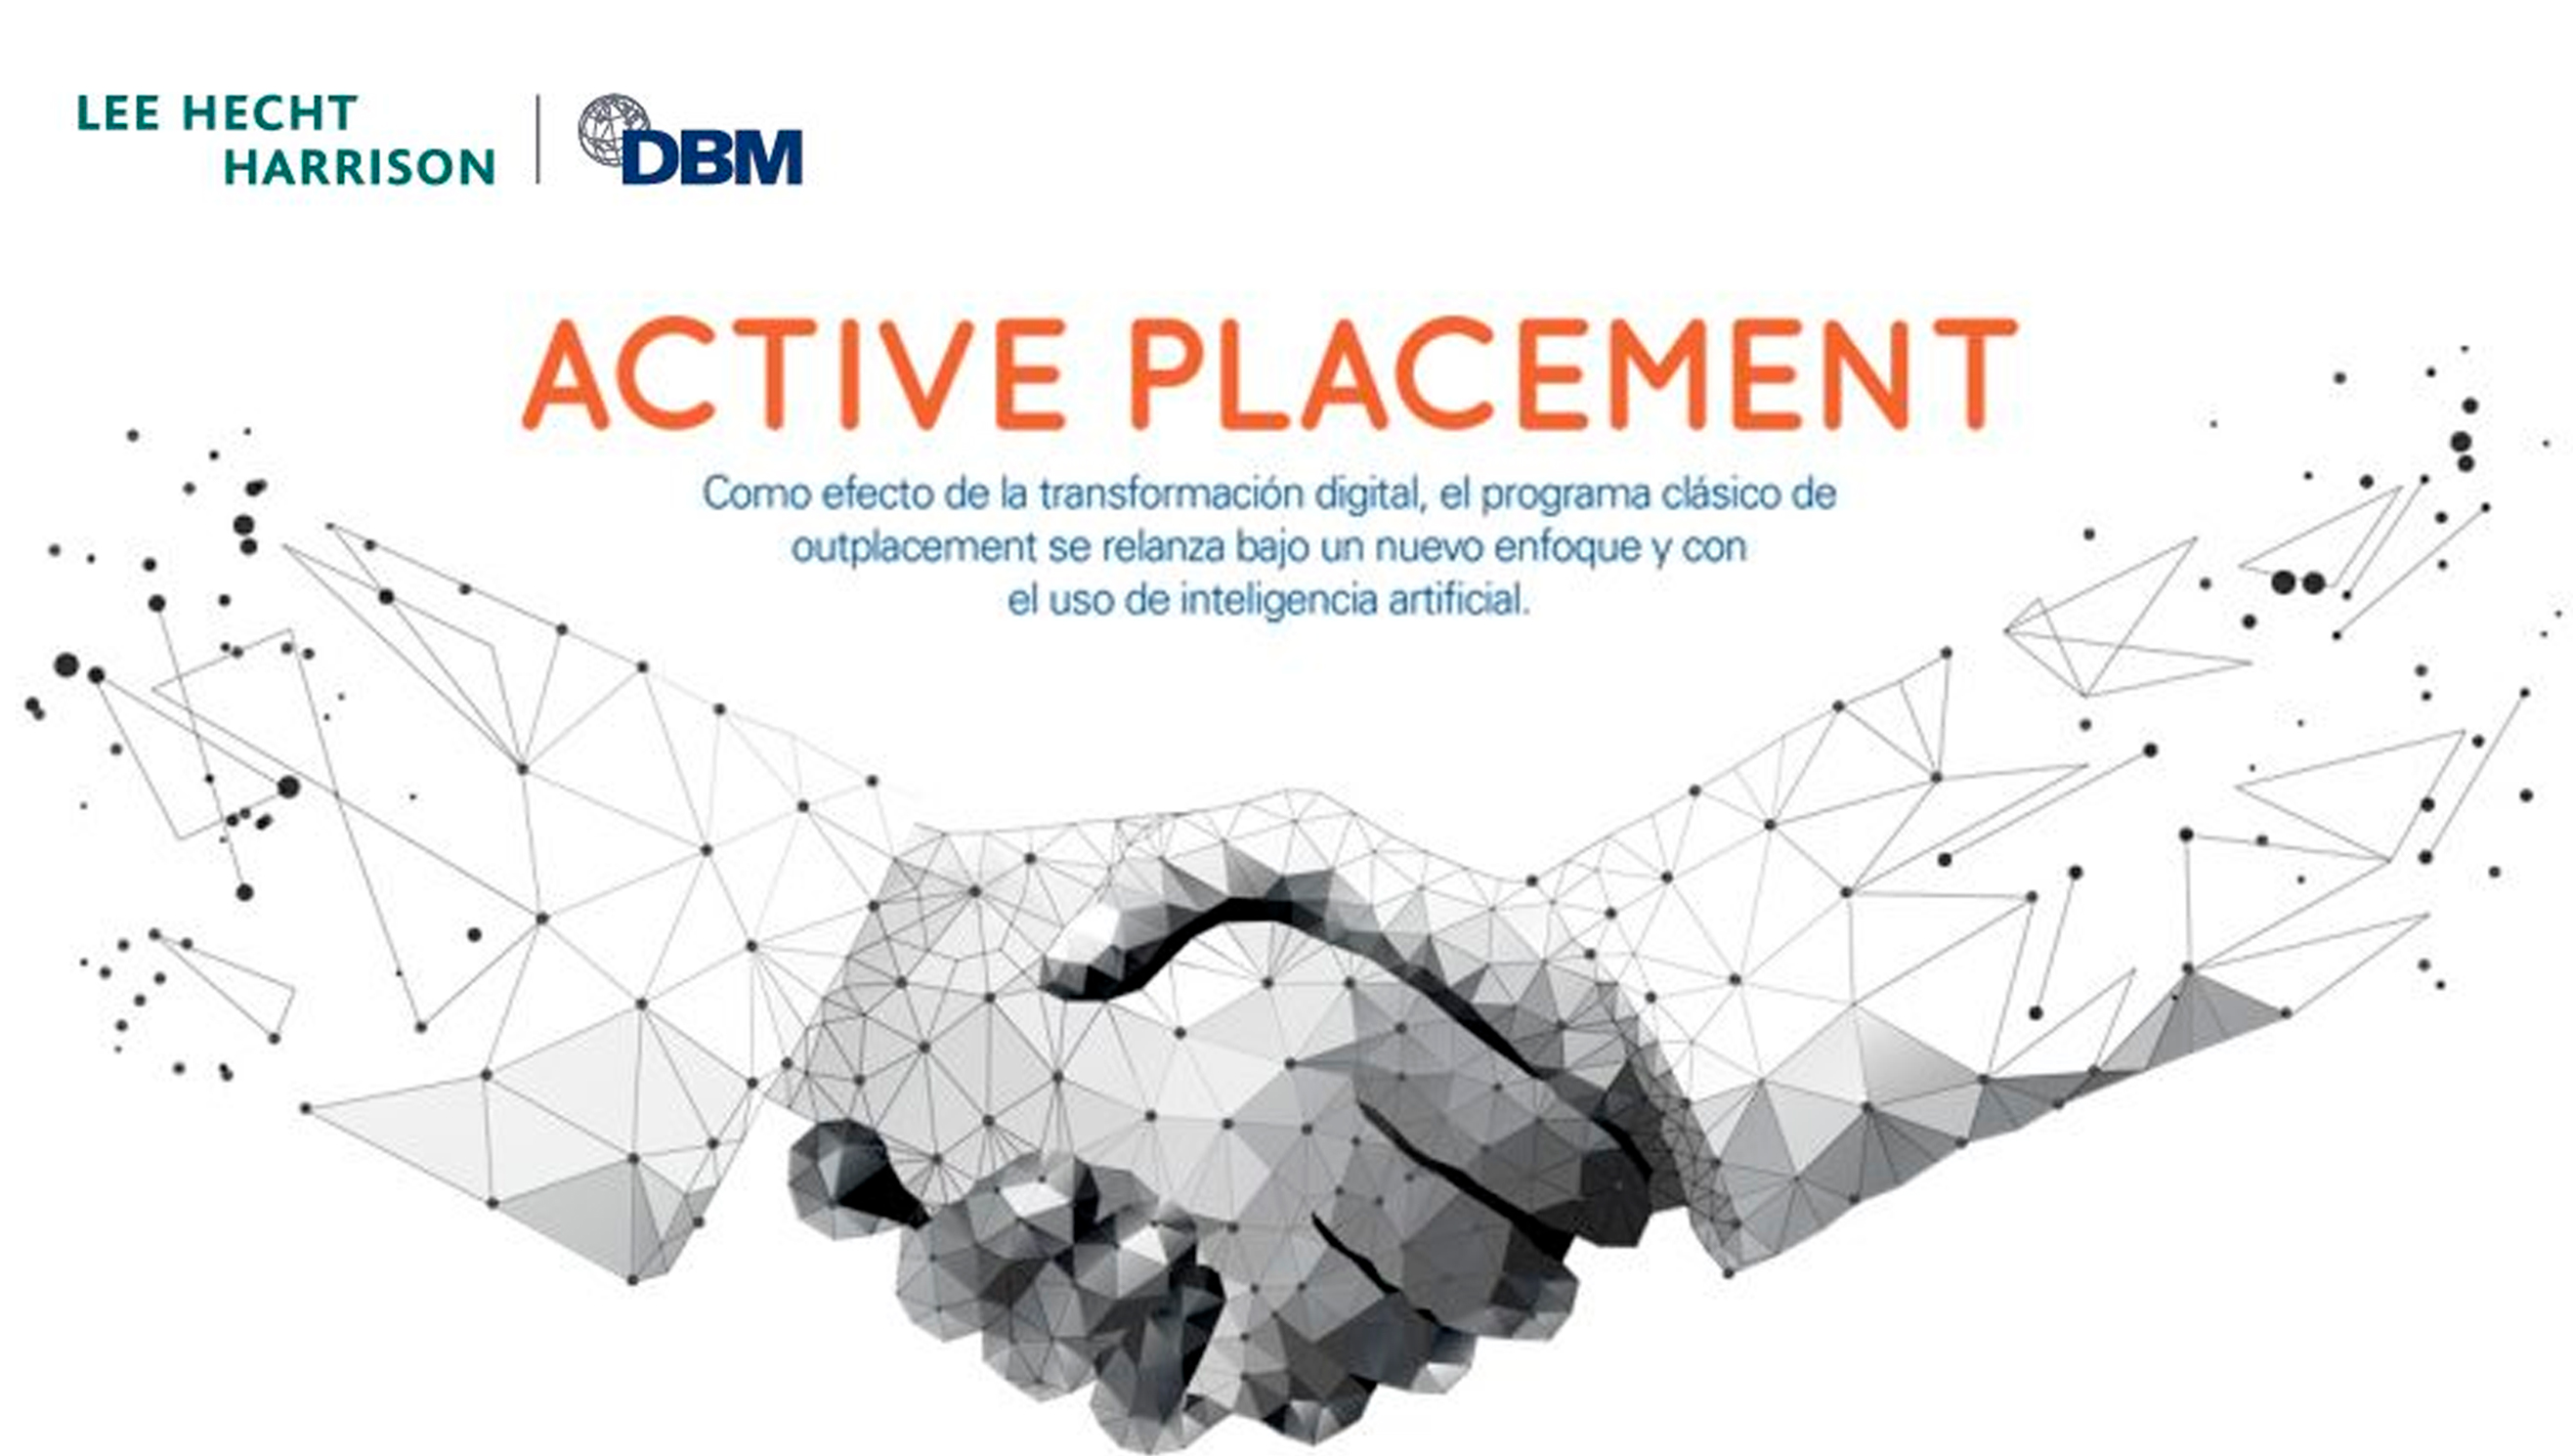 Especial Aptitus APM - Especial: Del Outplacement al Active Placement | Revista Aptitus